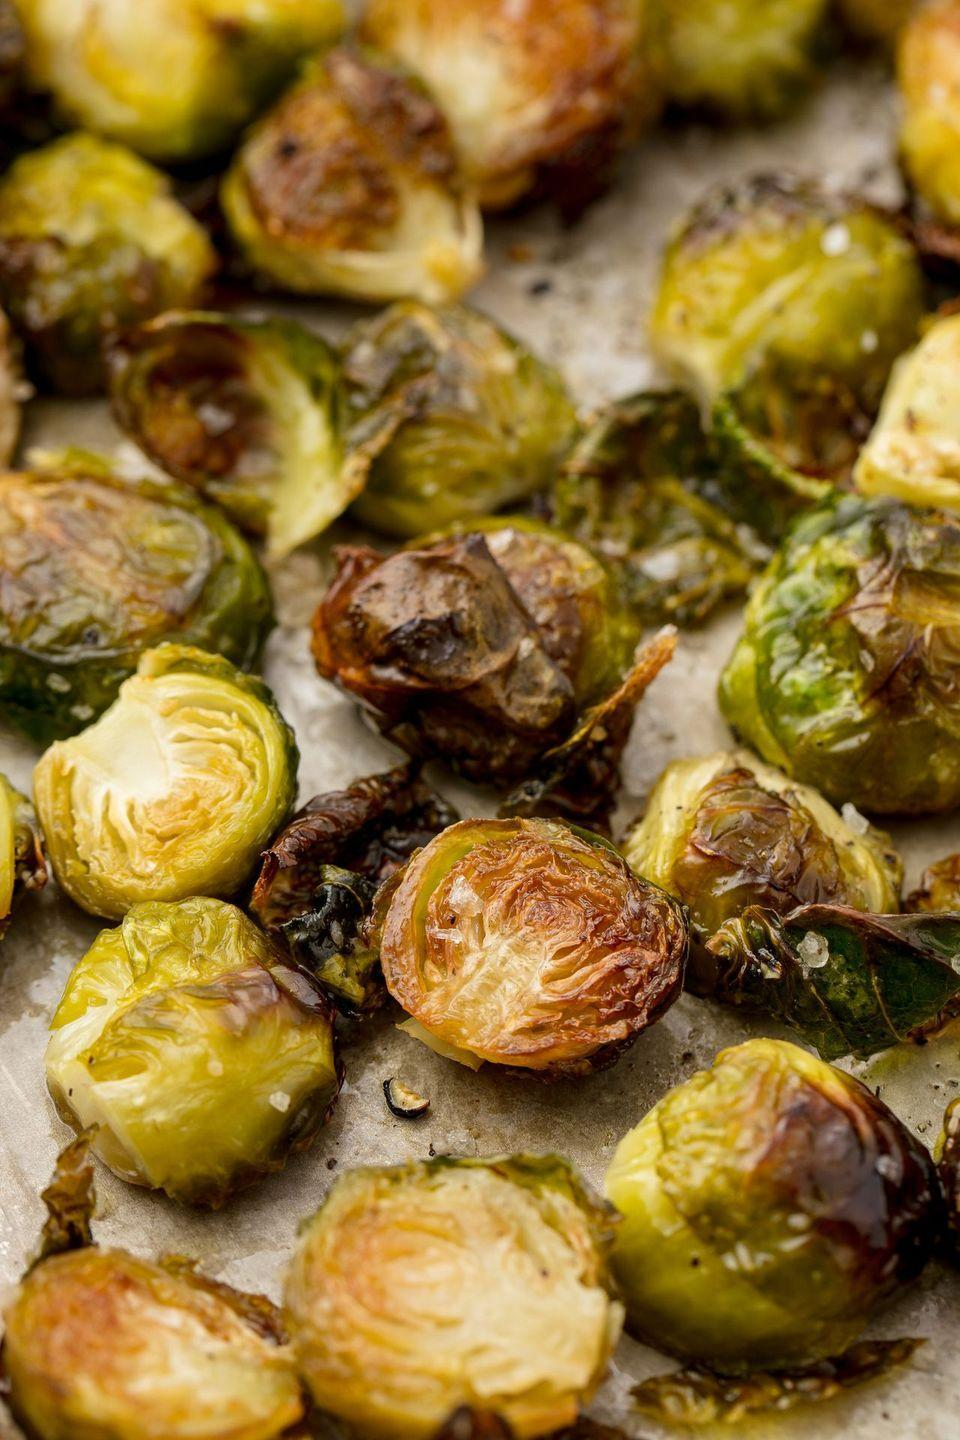 "<p>SO simple, SO few ingredients, SO delicious!</p><p>Get the recipe from <a href=""https://www.delish.com/cooking/recipe-ideas/a55335/best-roasted-brussel-sprouts-recipe/"" rel=""nofollow noopener"" target=""_blank"" data-ylk=""slk:Delish."" class=""link rapid-noclick-resp"">Delish. </a></p>"